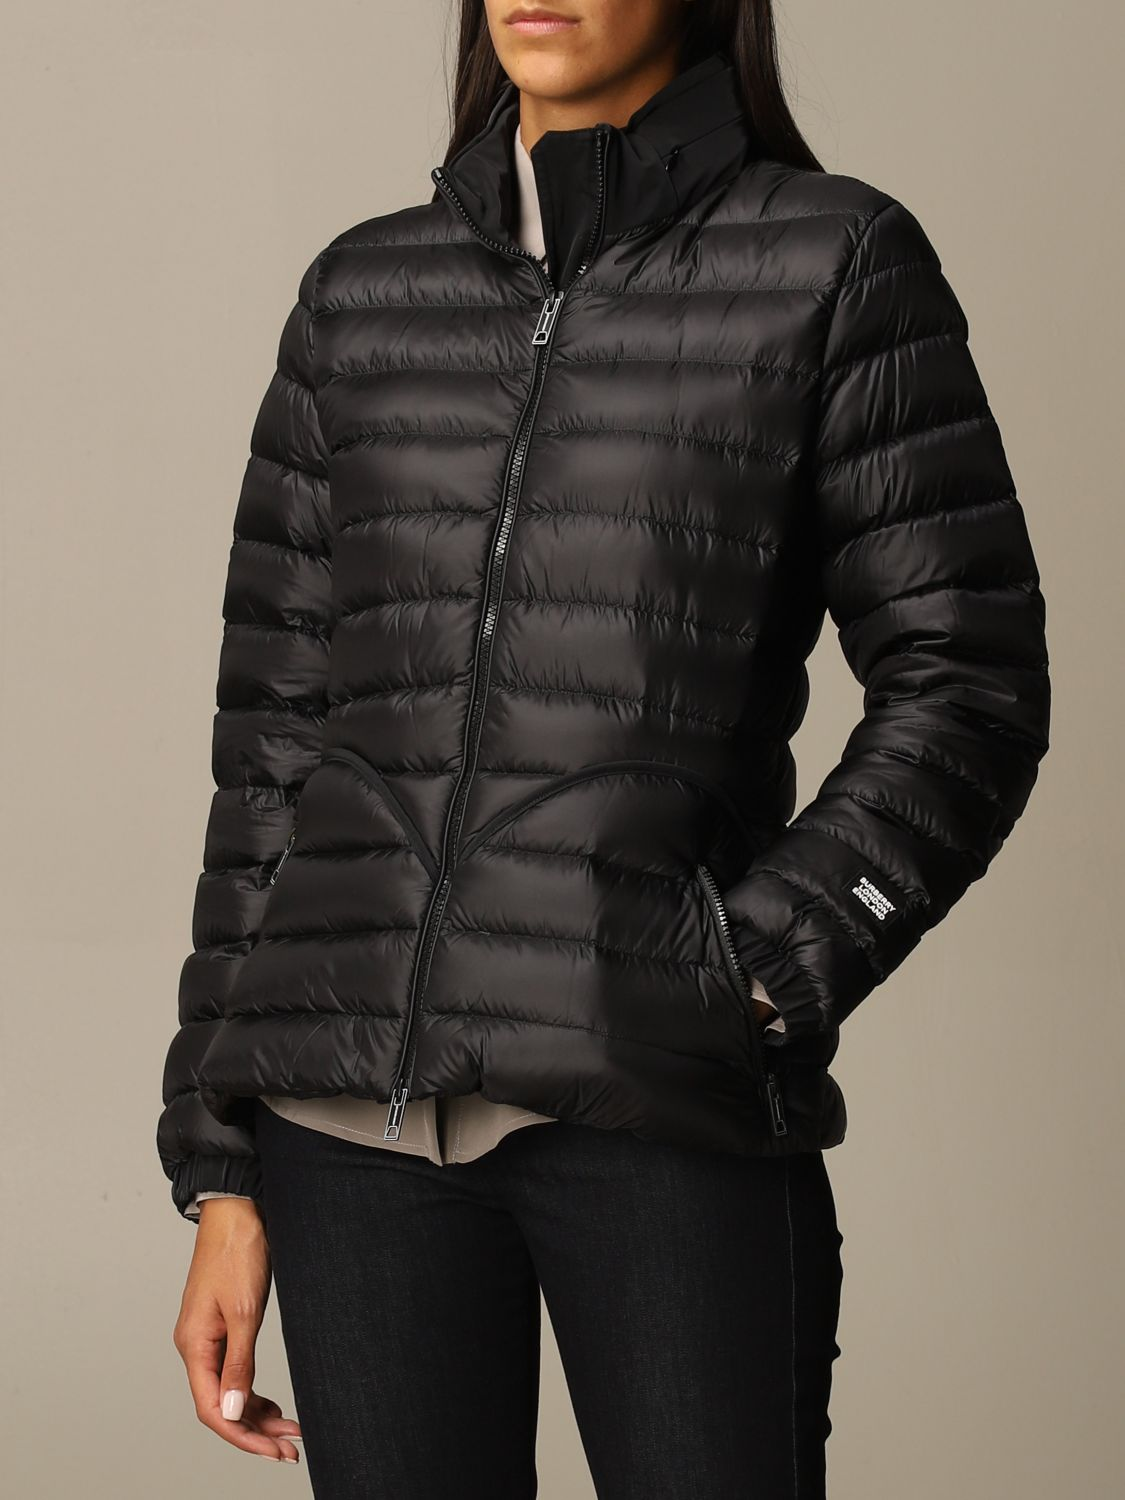 Jacket Burberry: Jacket women Burberry black 3